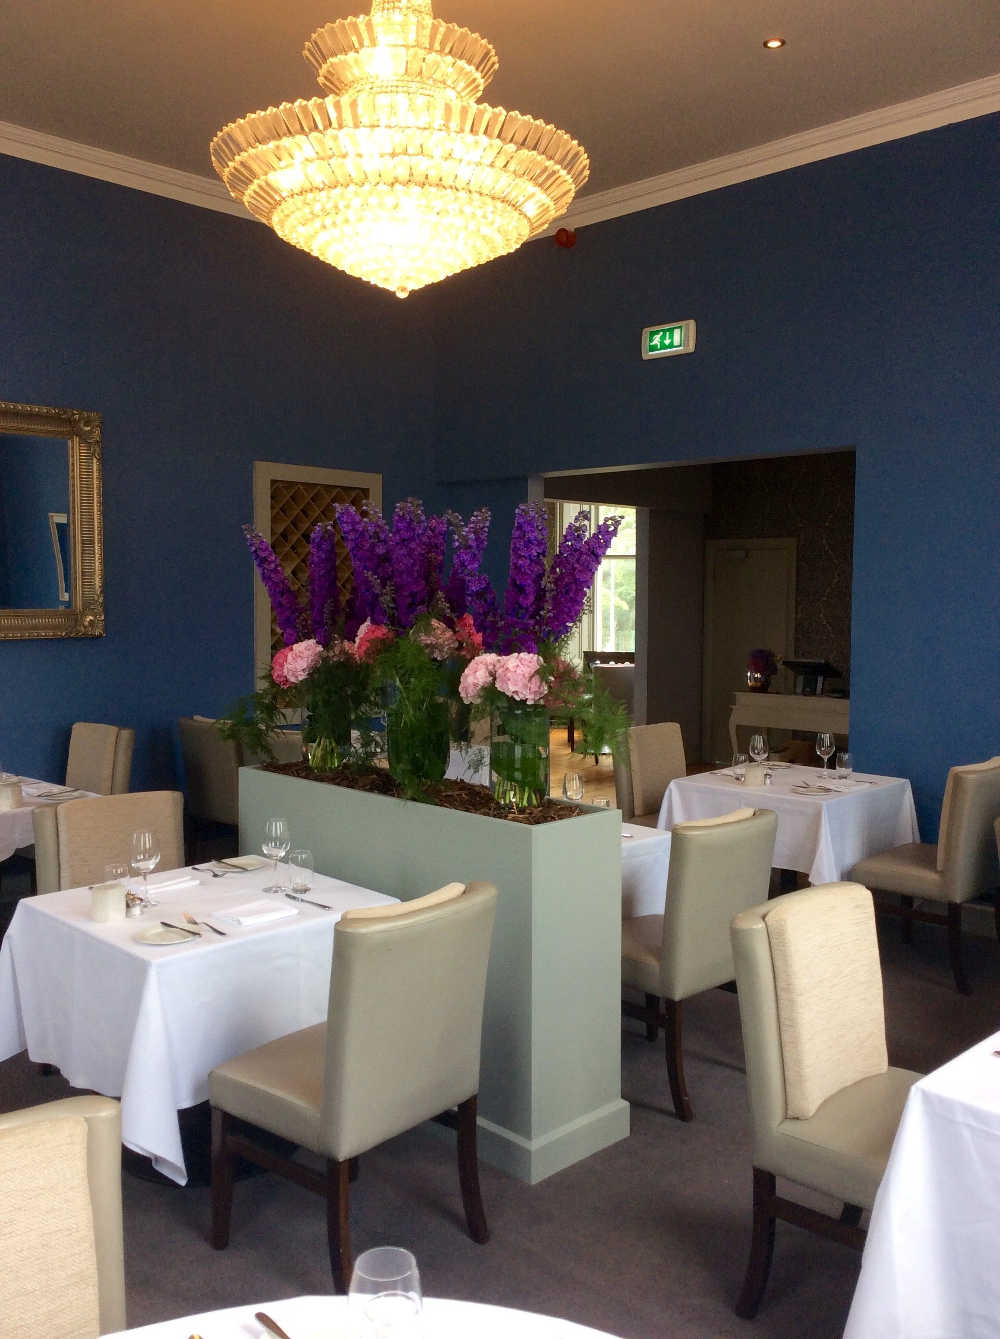 St George's Terrace Restaurant, Carrick-on-Shannon, Co Leitrim